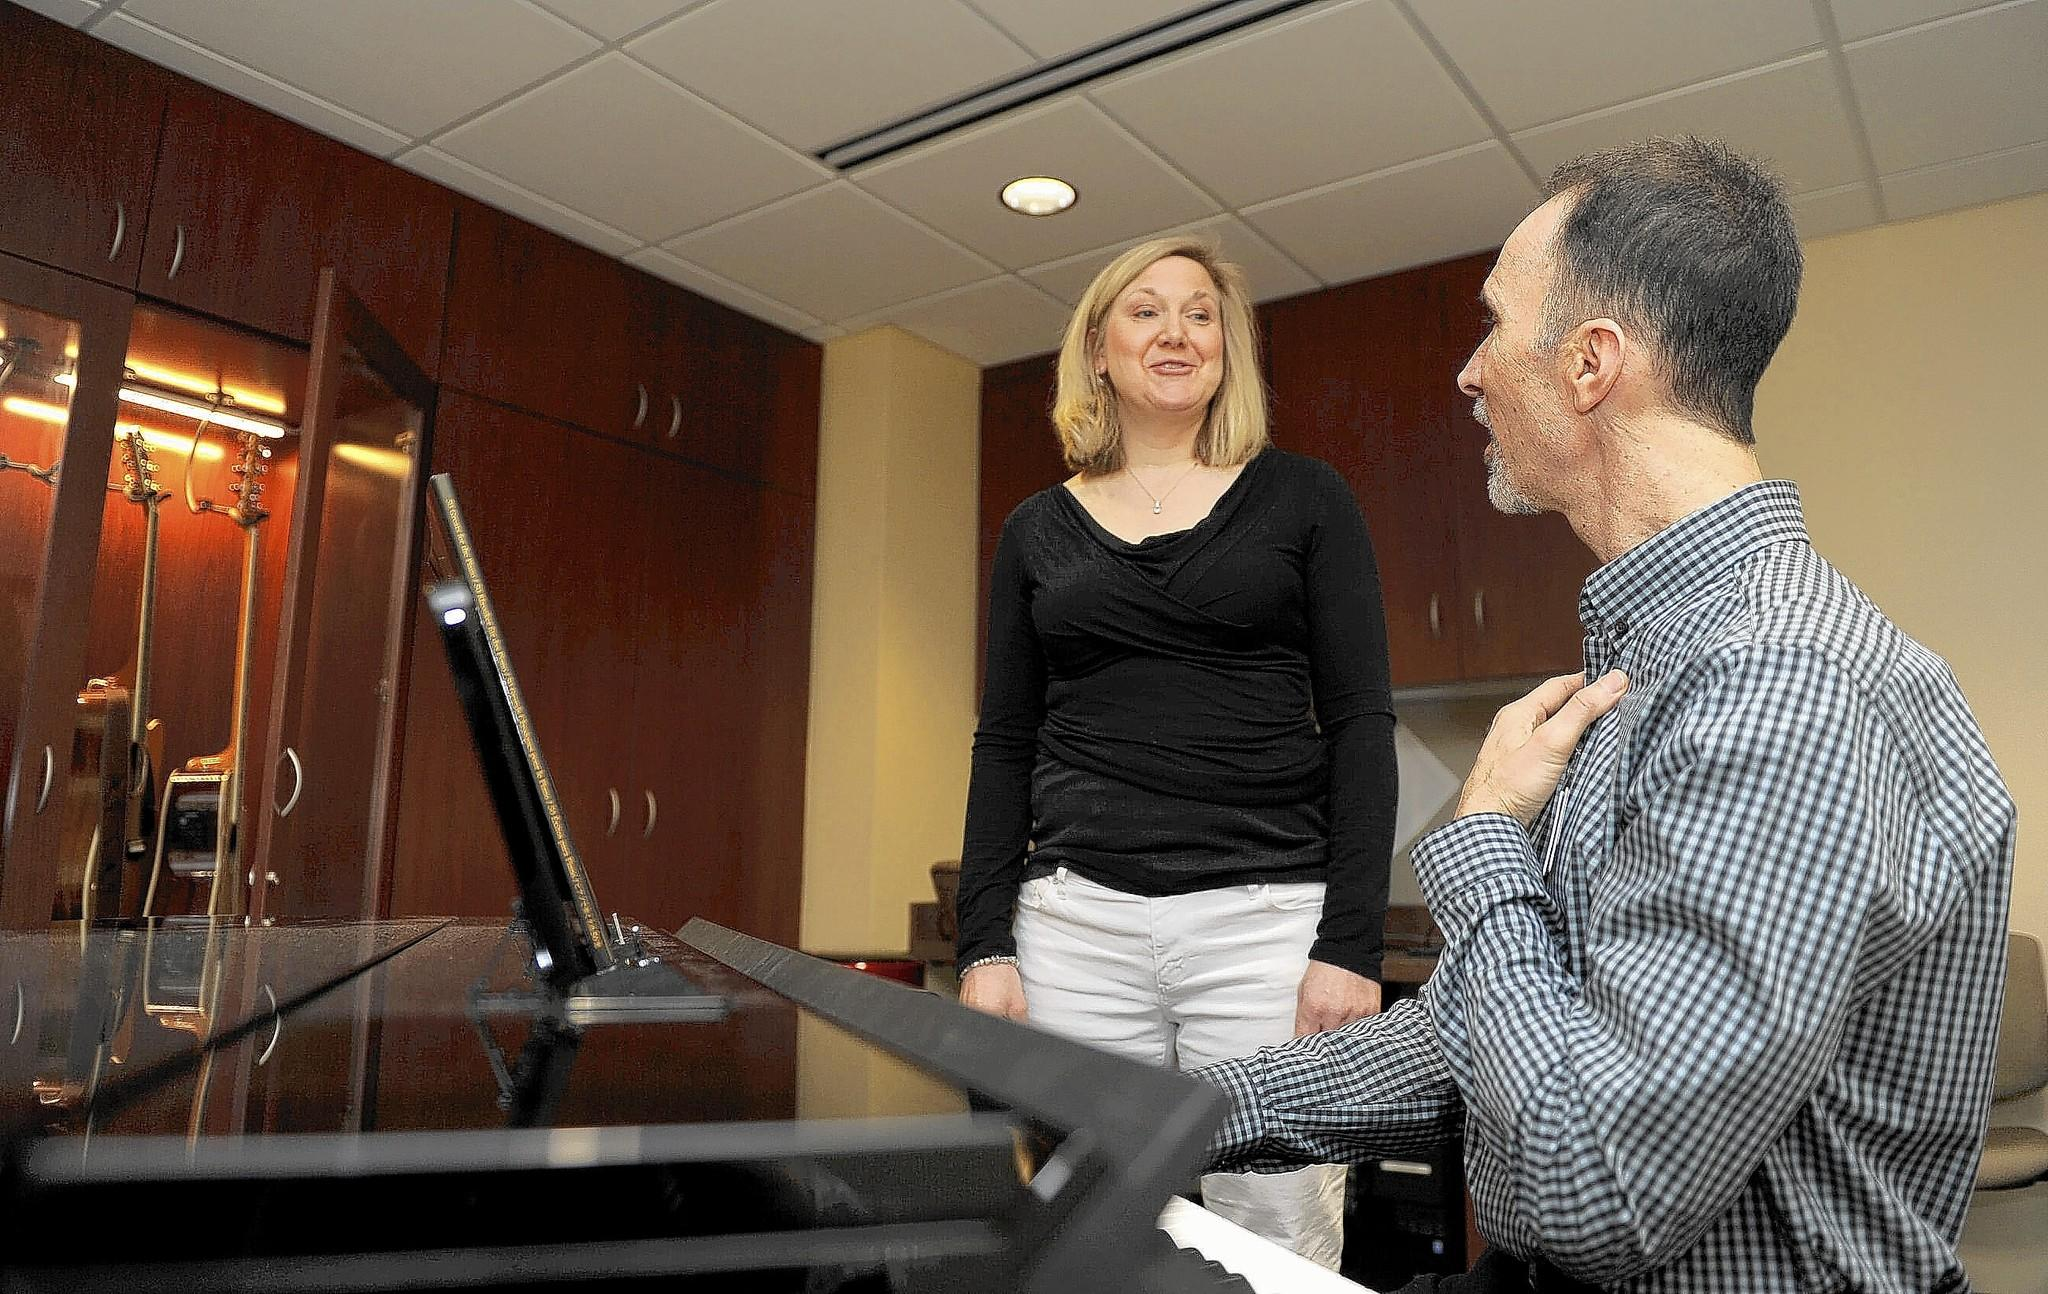 Vocal therapist Daniel Sherwood works with patient Teresa Wenck at the Johns Hopkins Voice Center's new Fender Music and Voice Studio, which is located on the GBMC campus.